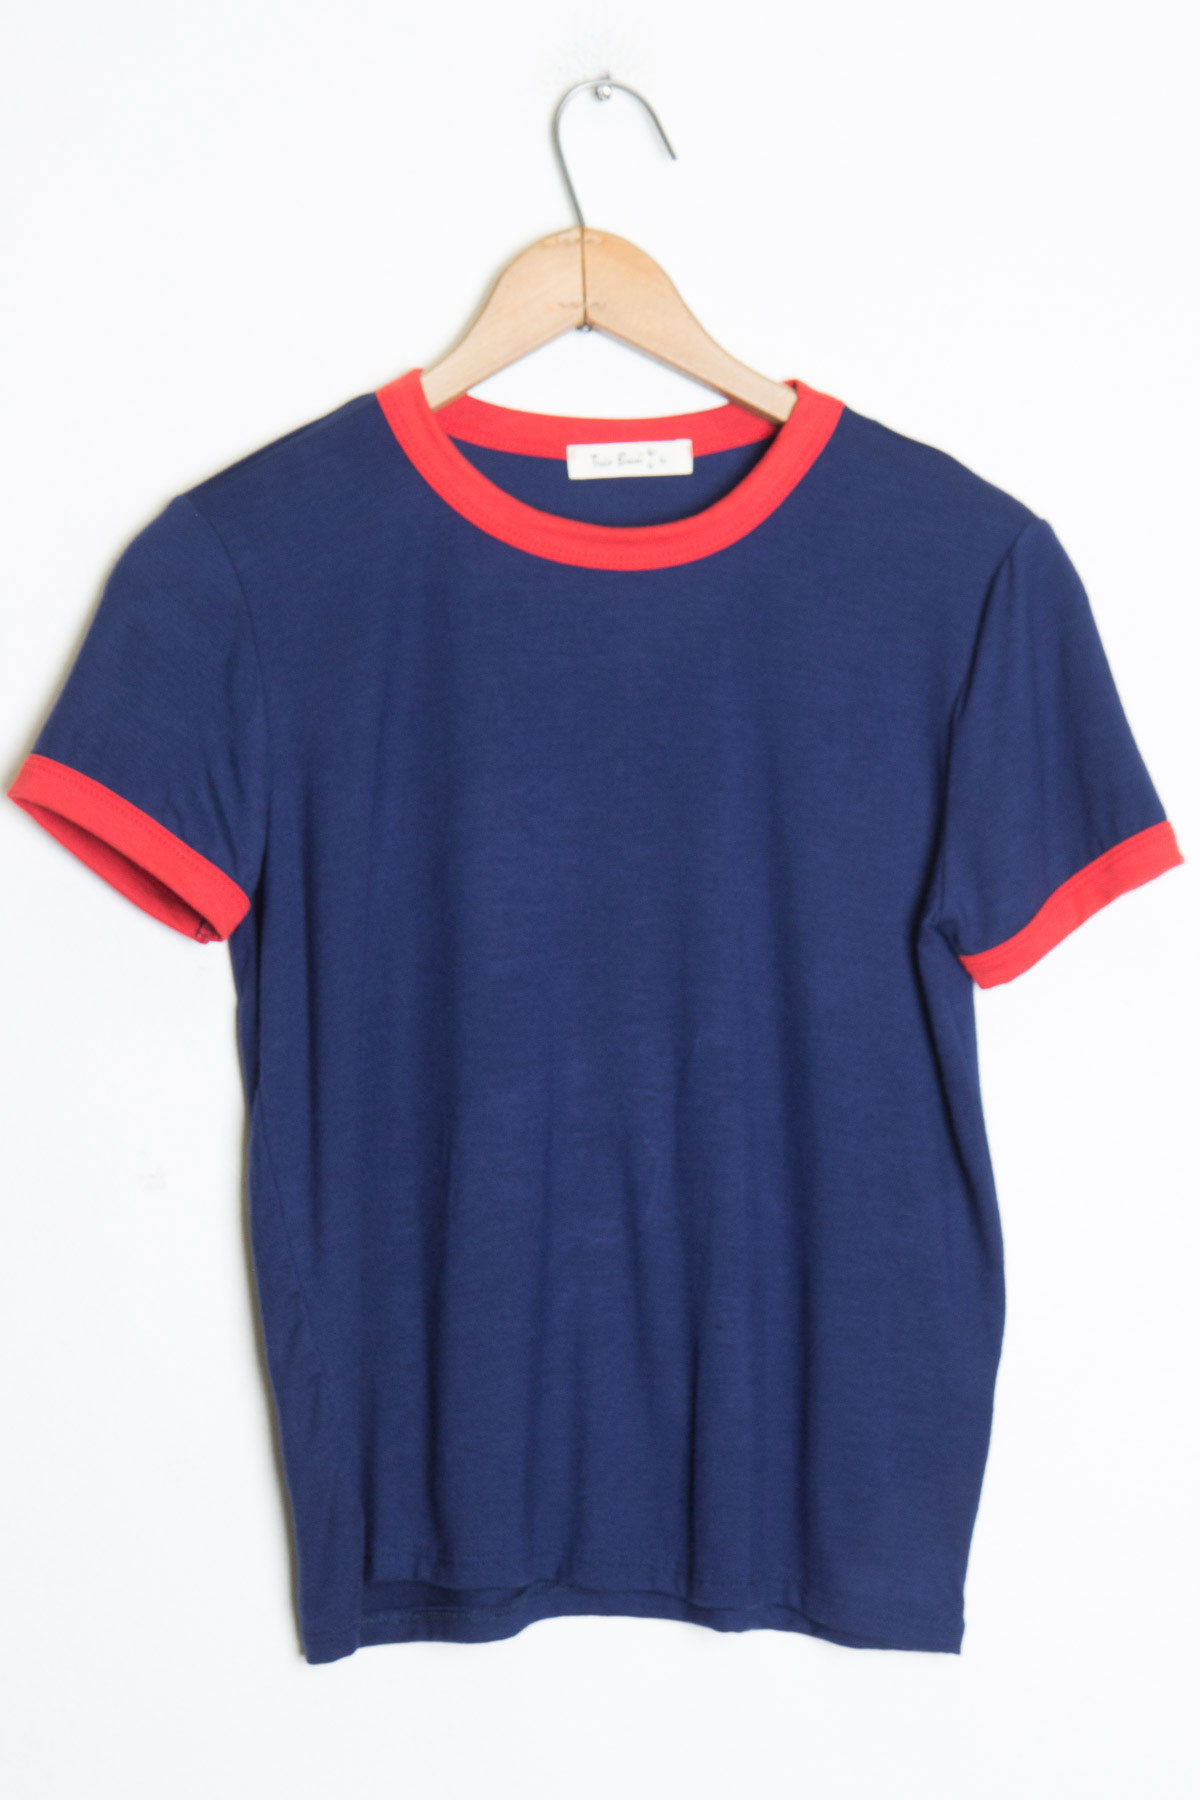 blue gold ringer tee